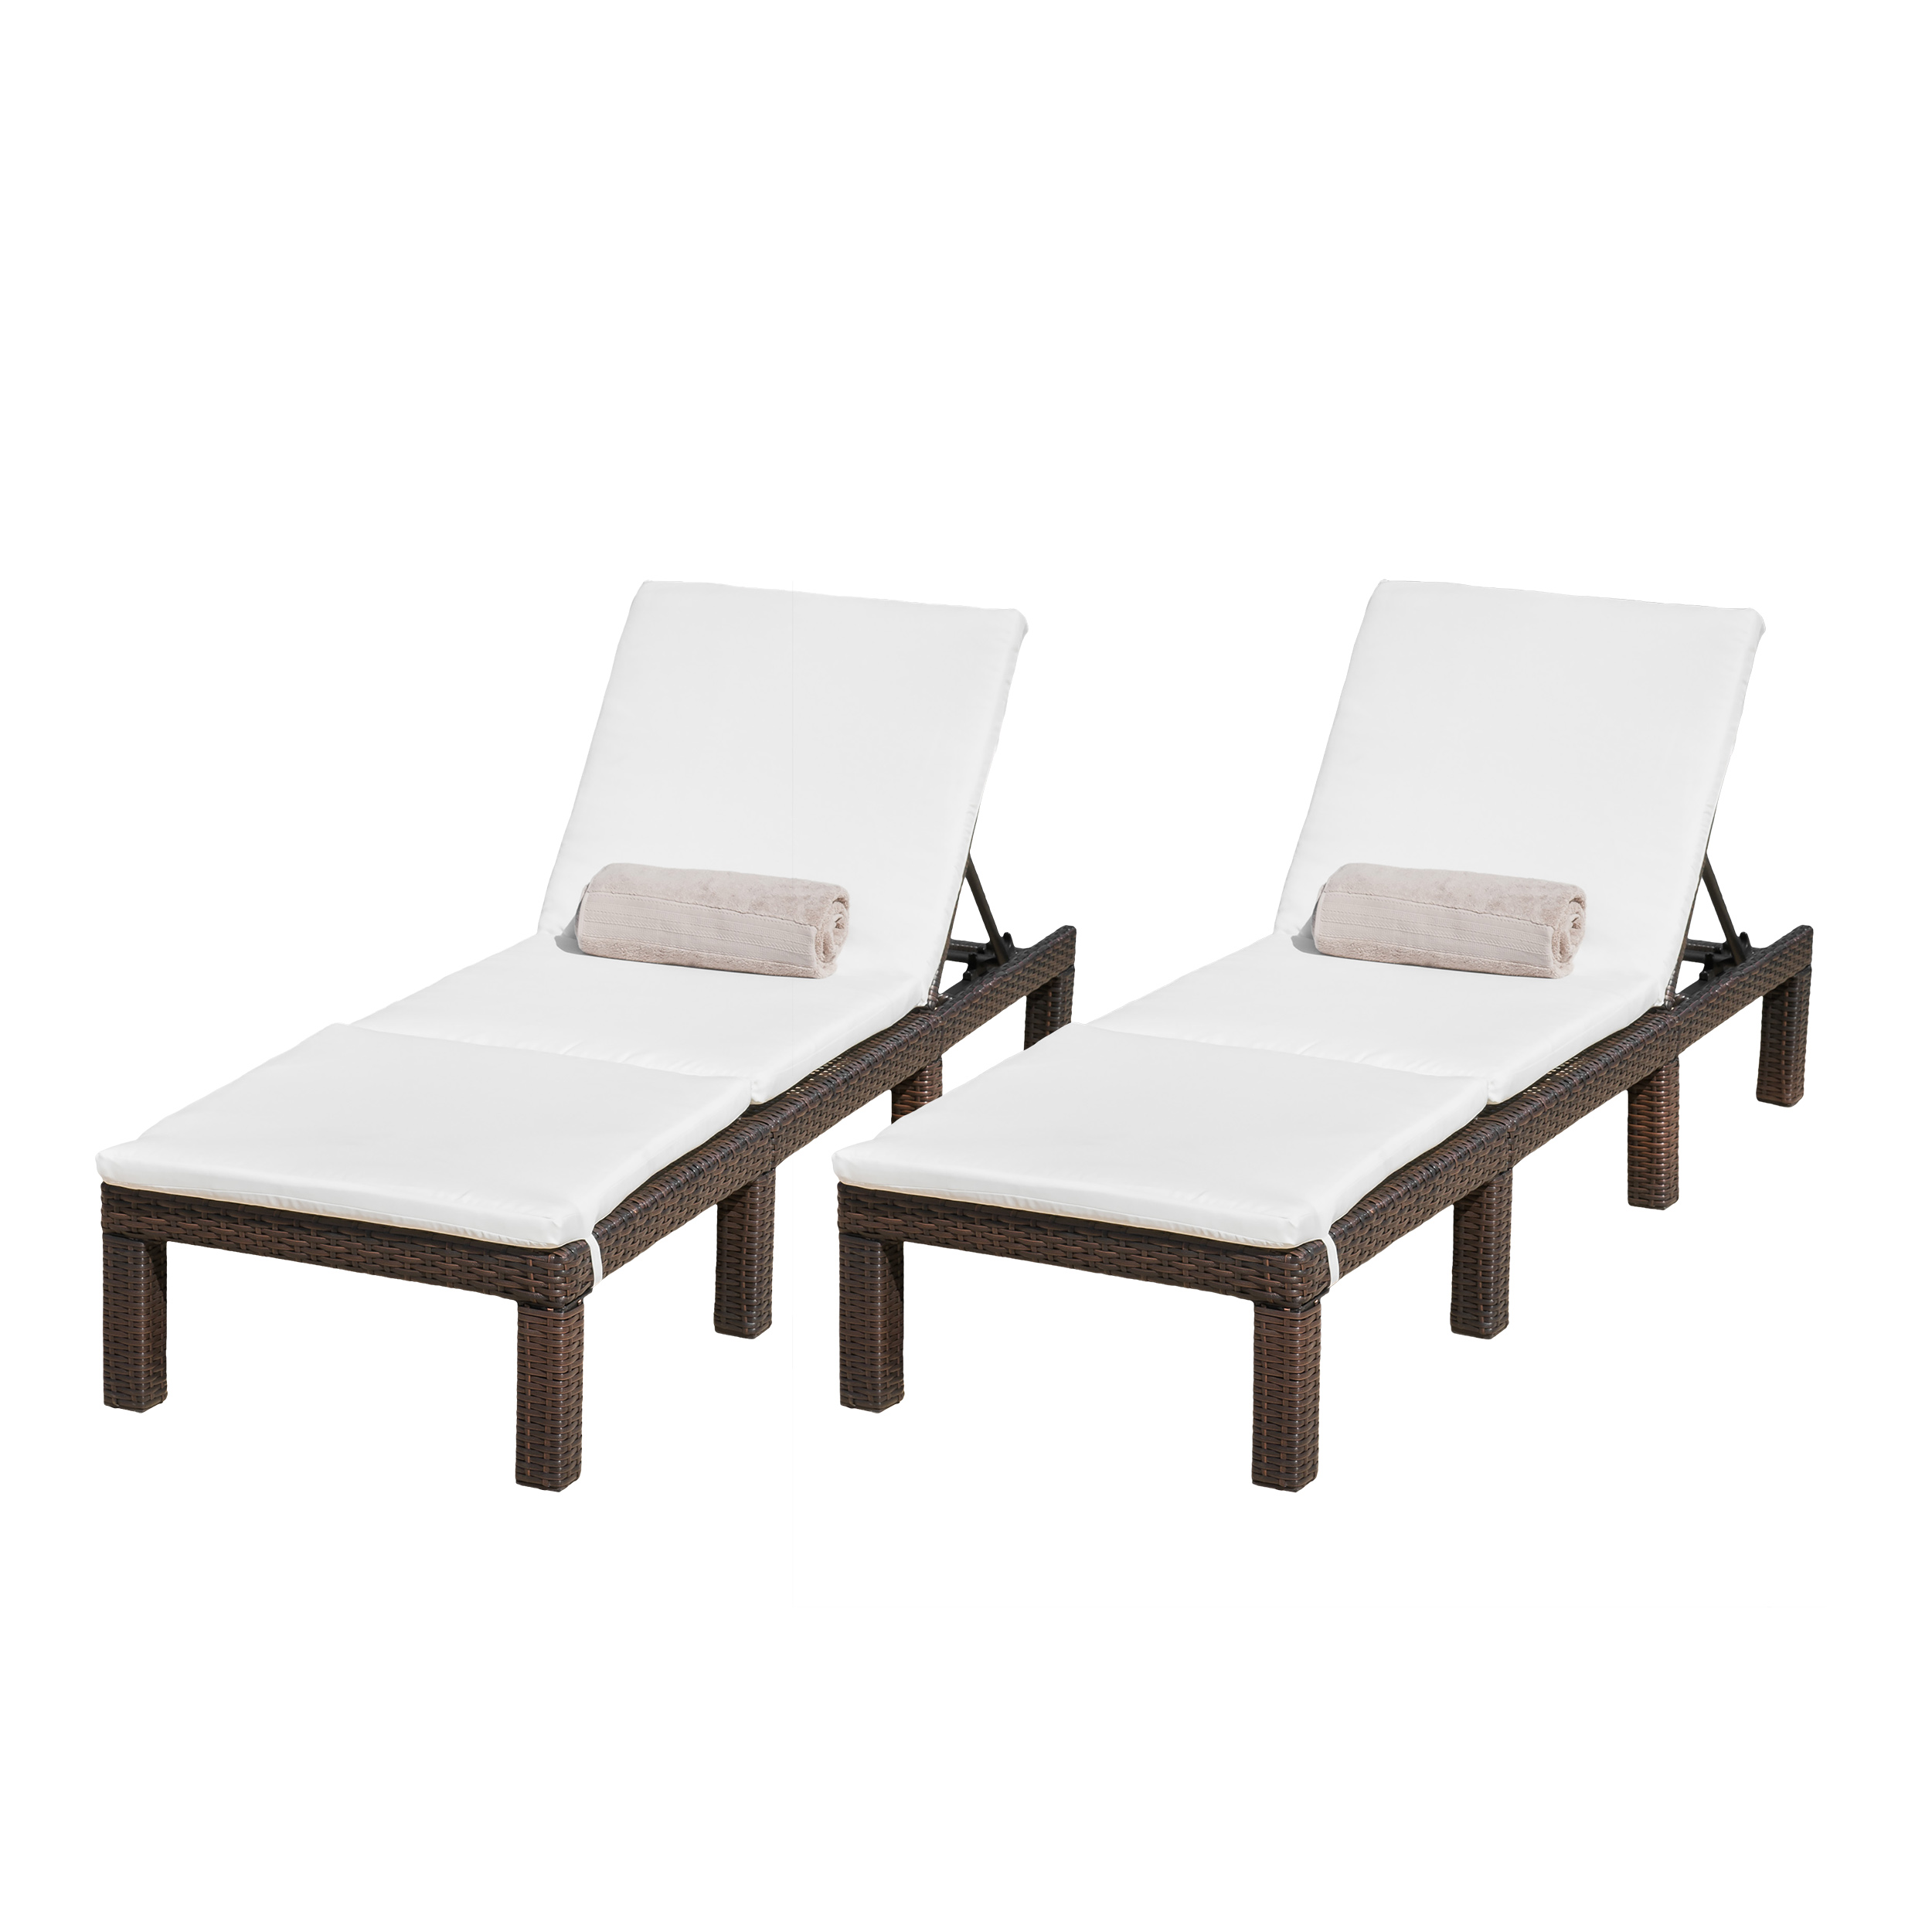 Aspen Outdoor Wicker Adjustable Chaise Lounges with Cushions (Set of 2) by GDF Studio